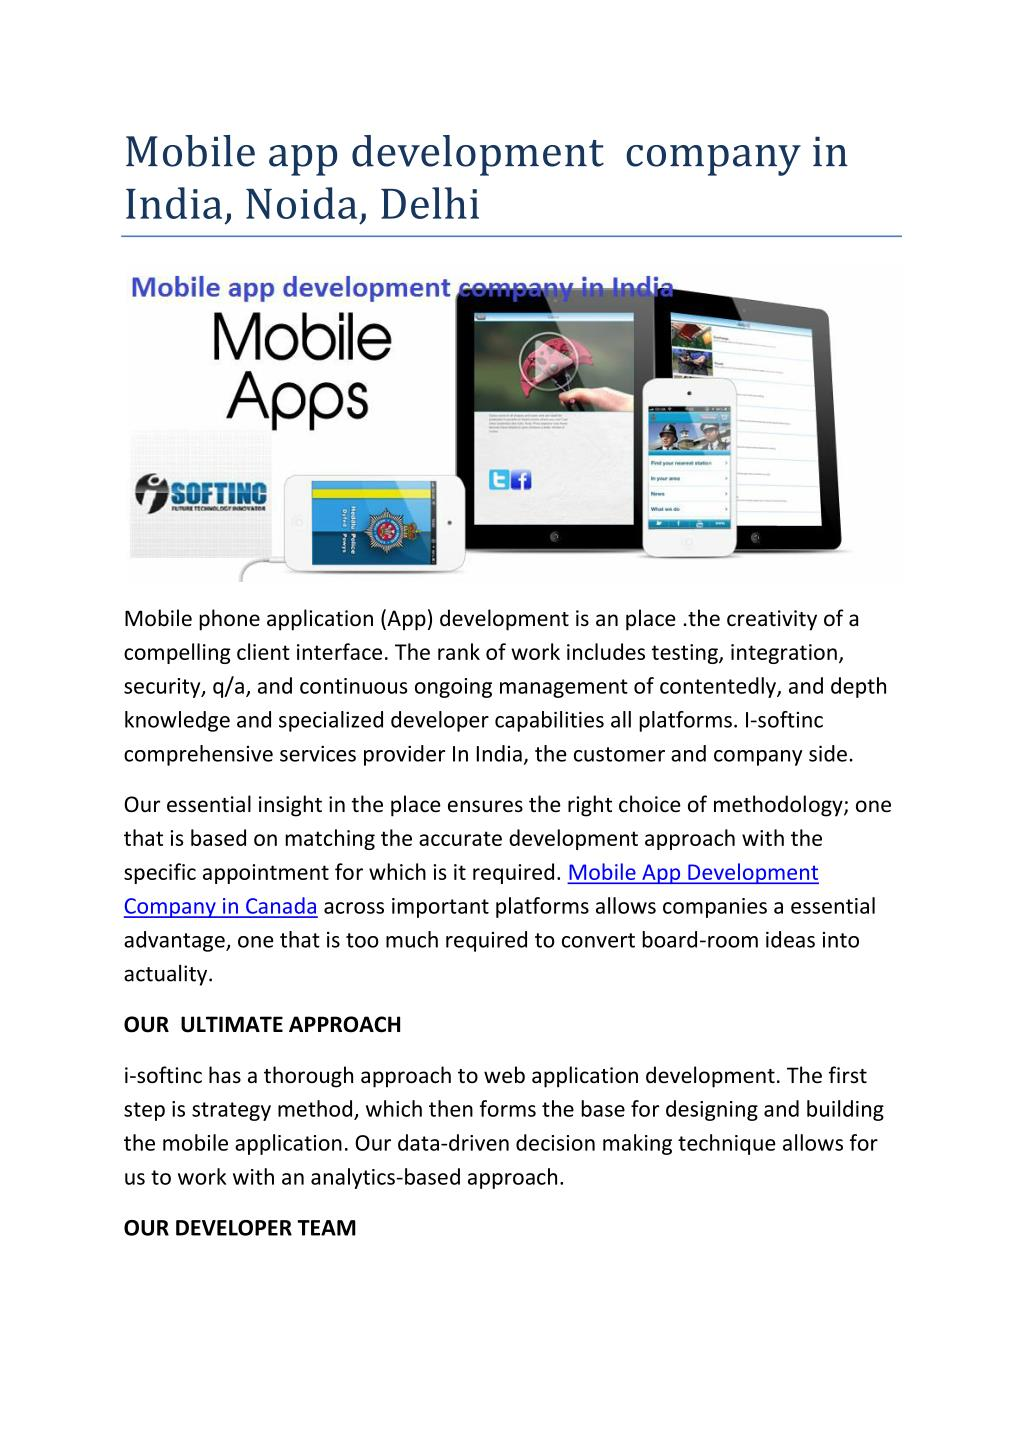 PPT - Mobile app development company services in Delhi PowerPoint